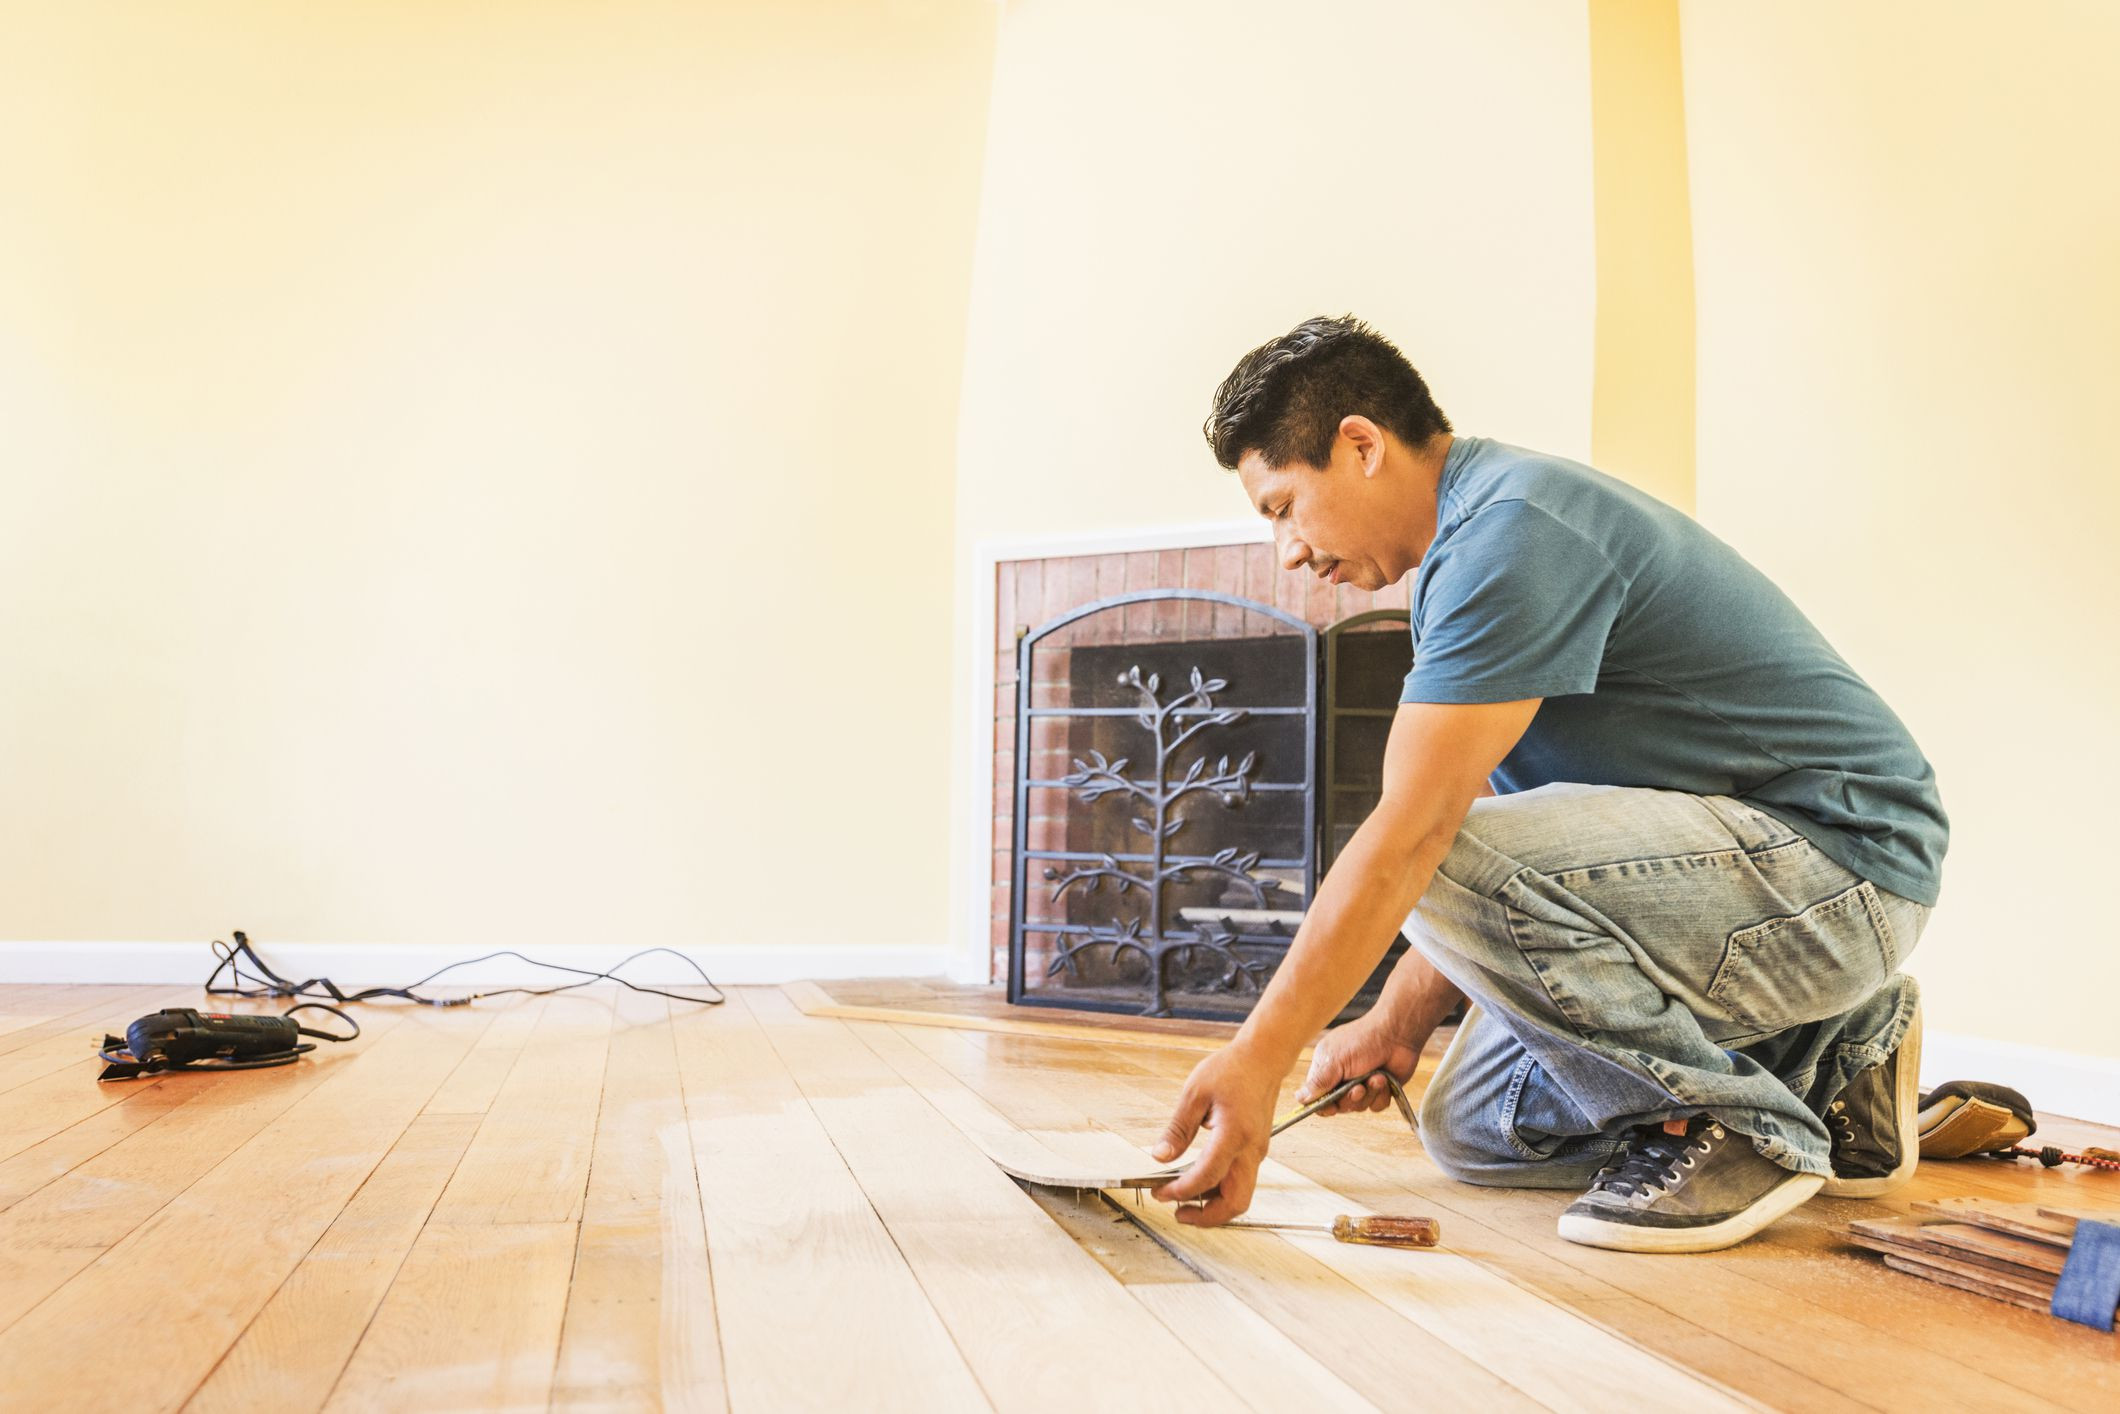 hardwood flooring warehouse near me of hardwood installer how to hire and what to expect in installing wood flooring 592016327 57af51a23df78cd39cfa08d9